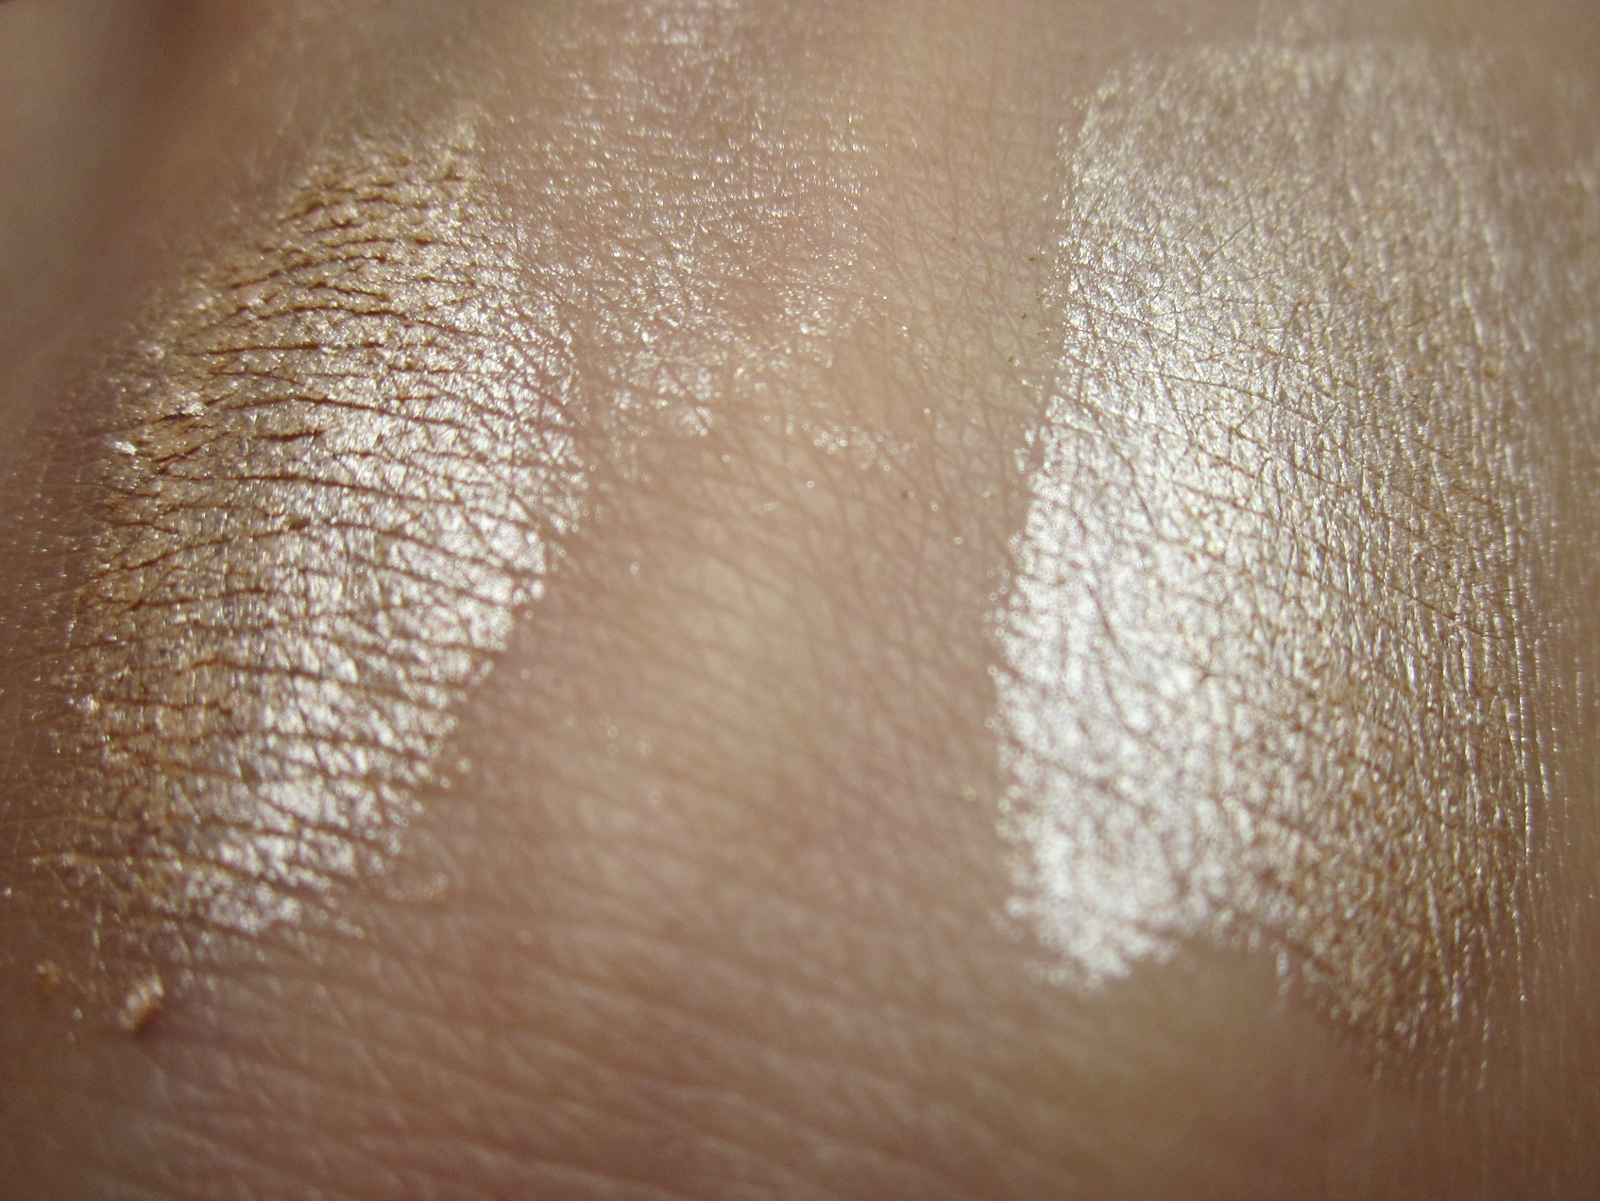 Pro-Prime Smudge-Proof Eyeshadow Base by NARS #6